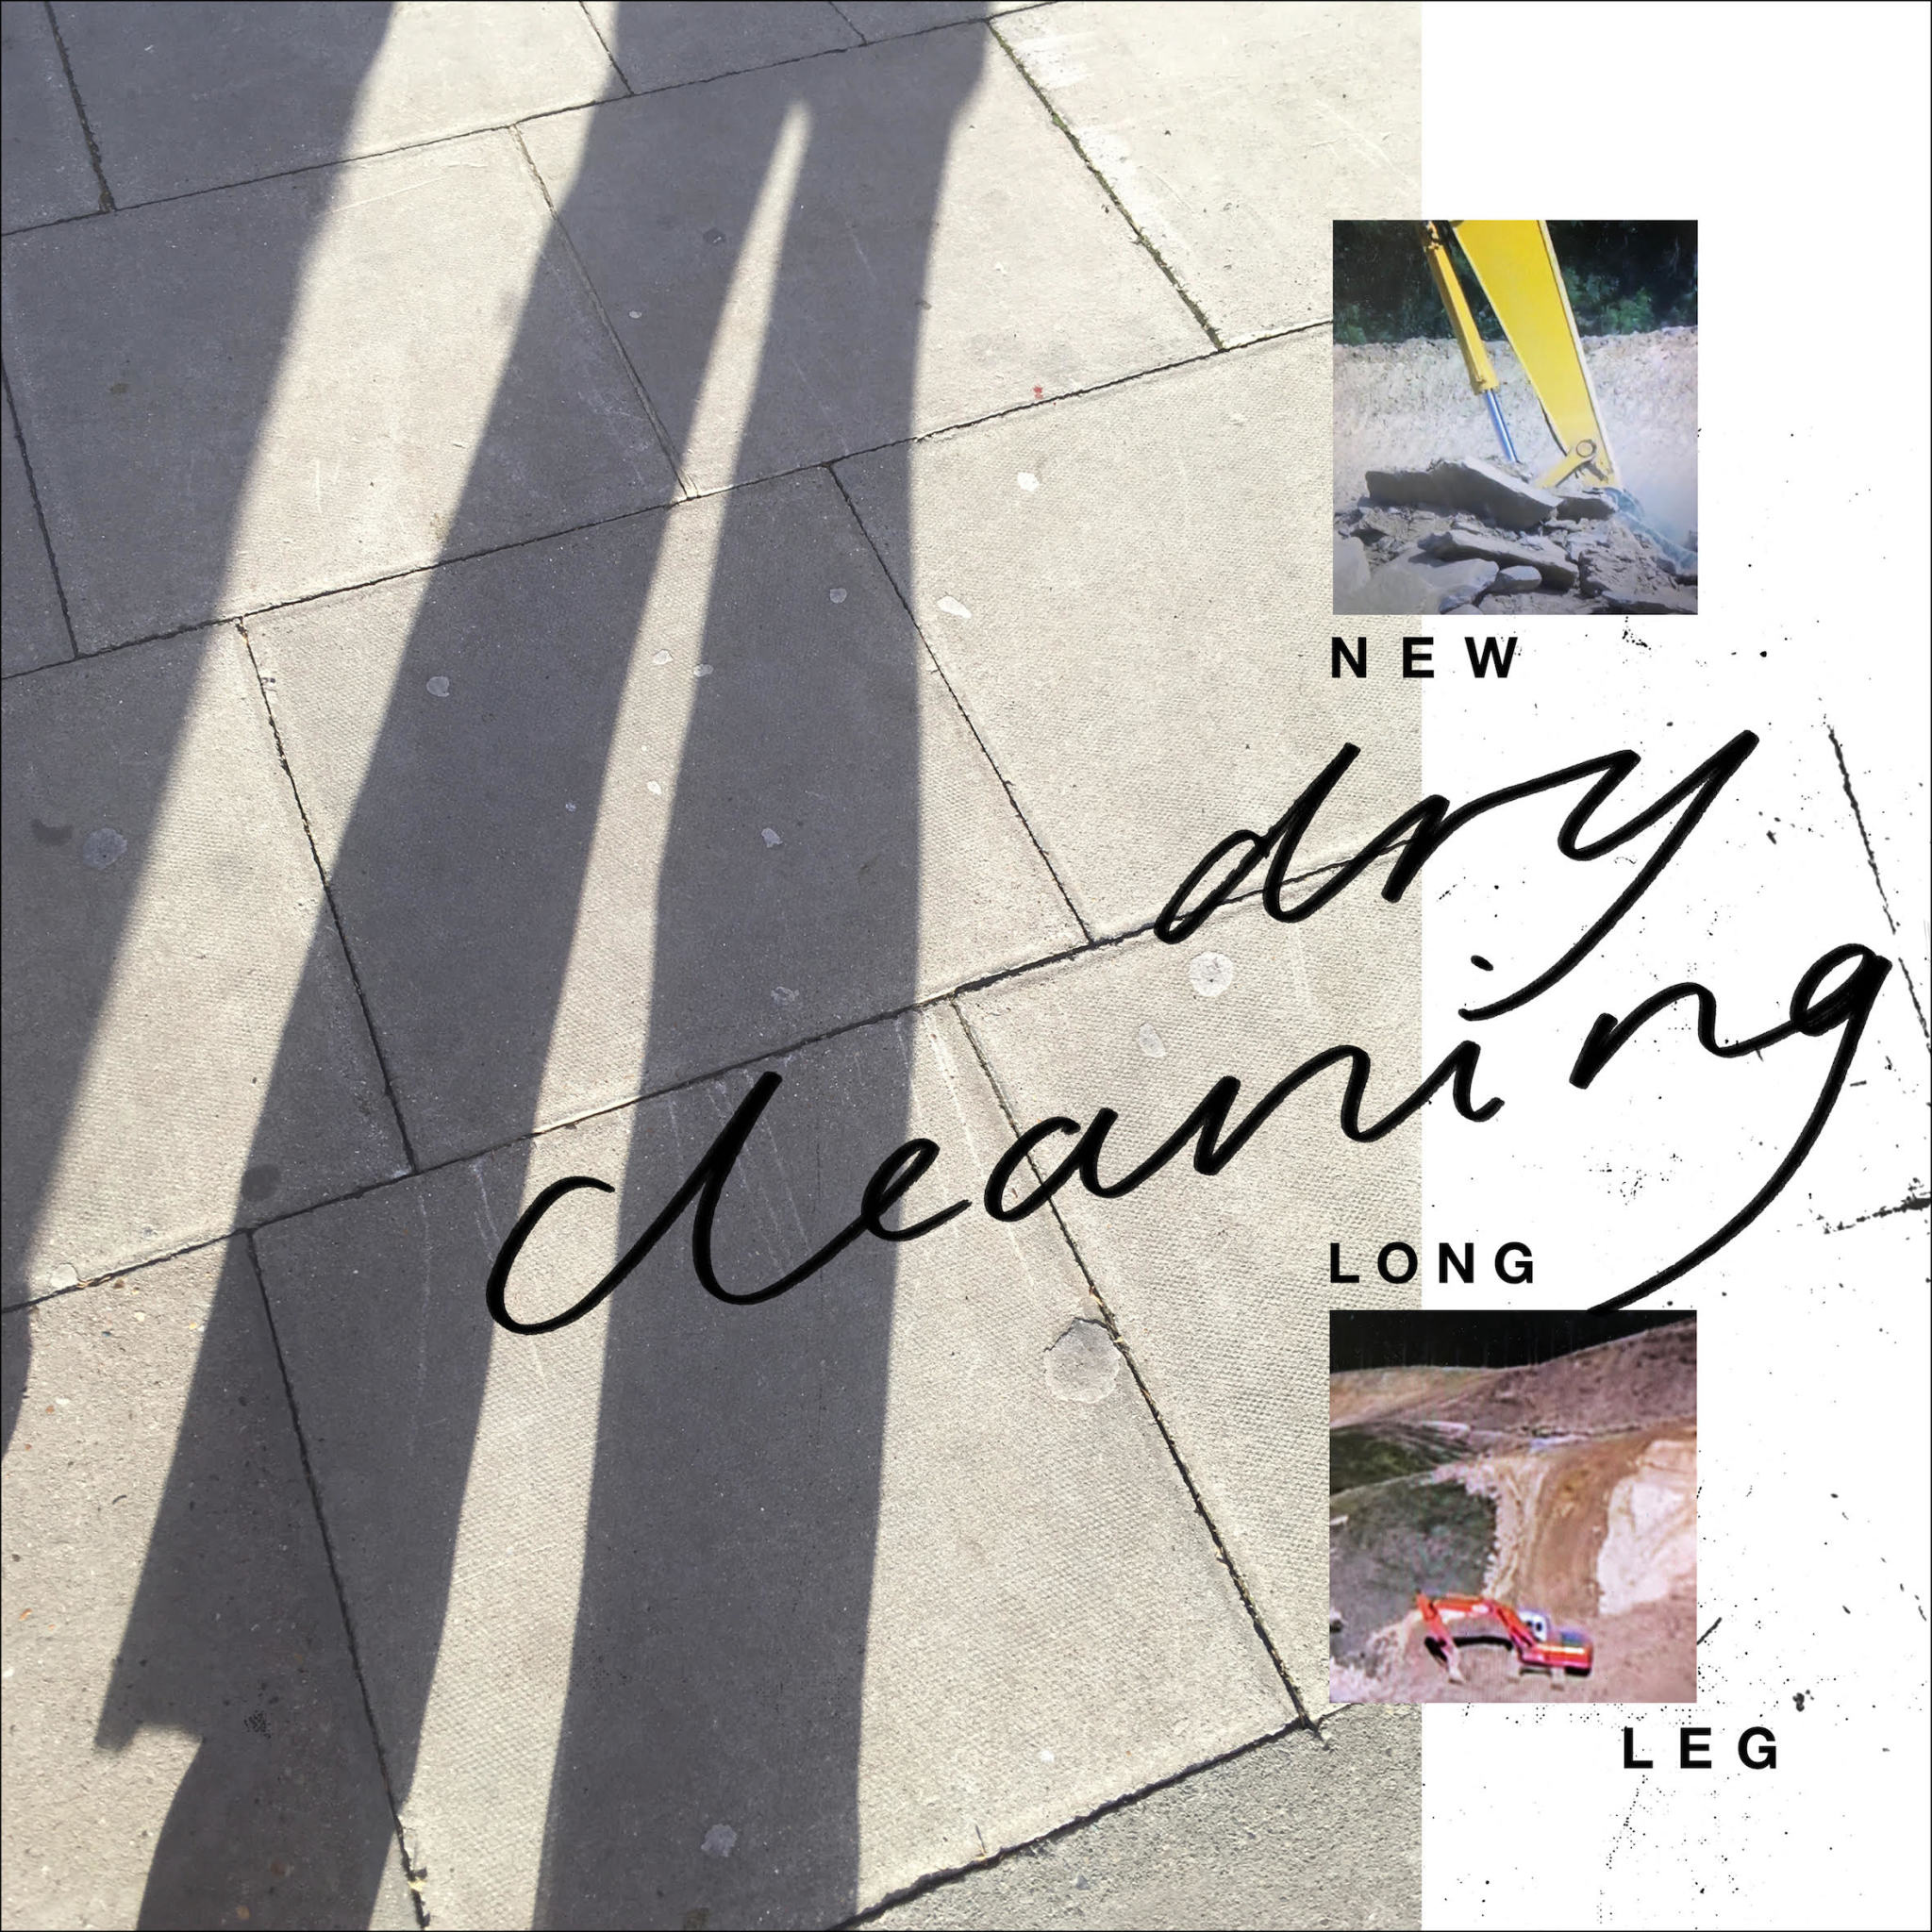 4AD Dry Cleaning - New Long Leg (Coloured Vinyl)